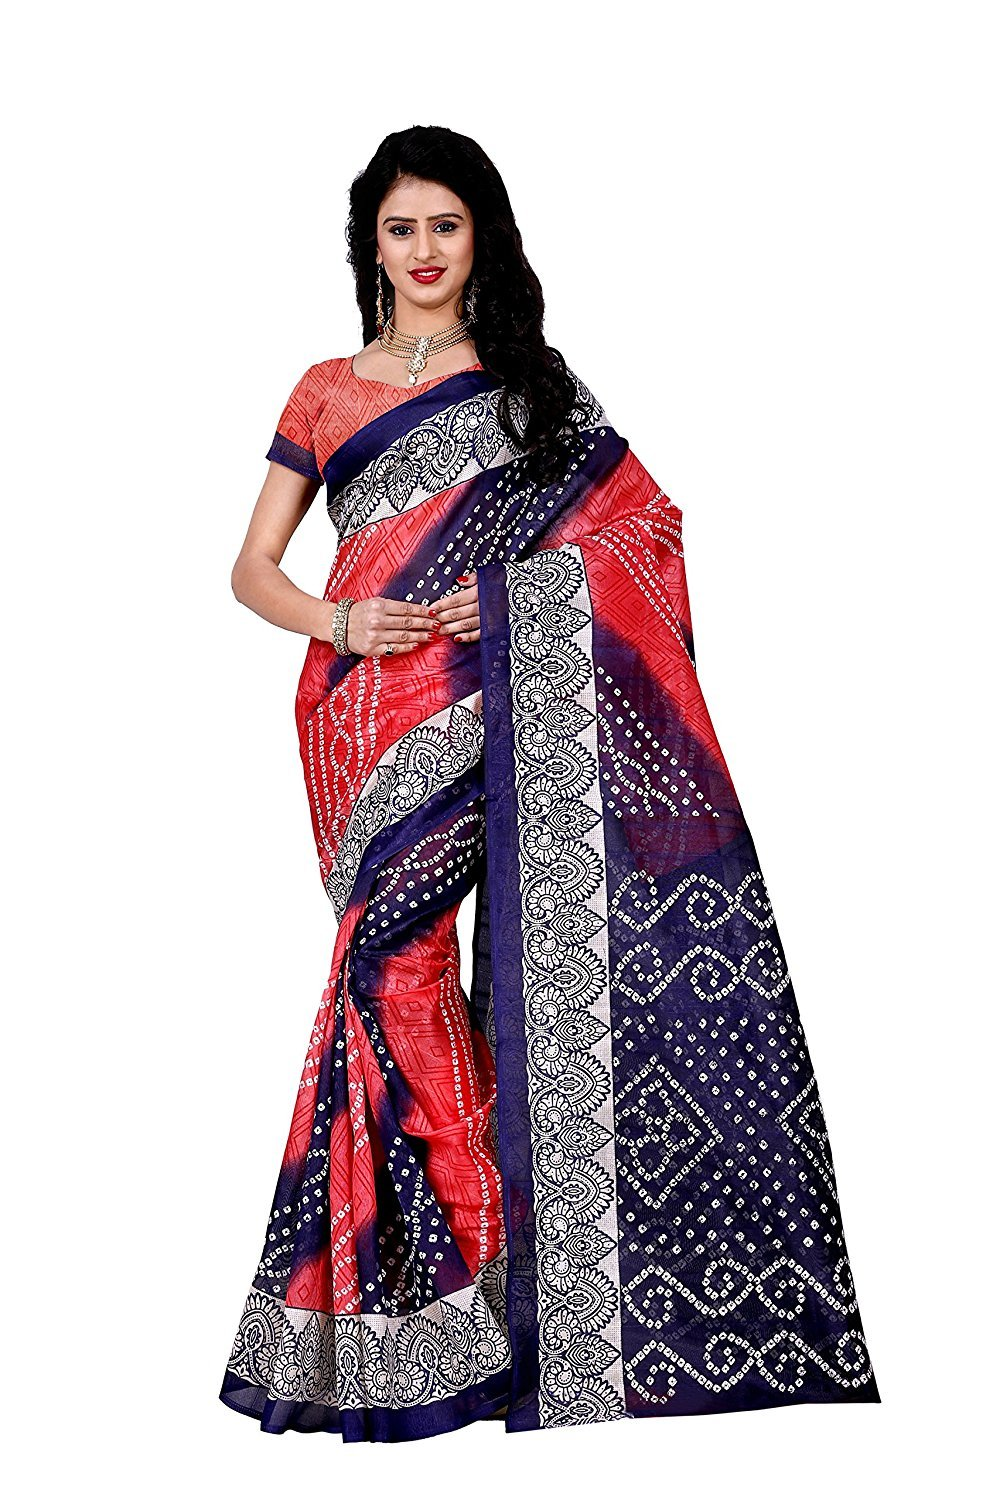 798f2f8dff0d0 Get Quotations · Shonaya Indian Women`S Party Wear Bhaglpuri Silk Saree  With Unstitched Blouse Piece (Pink